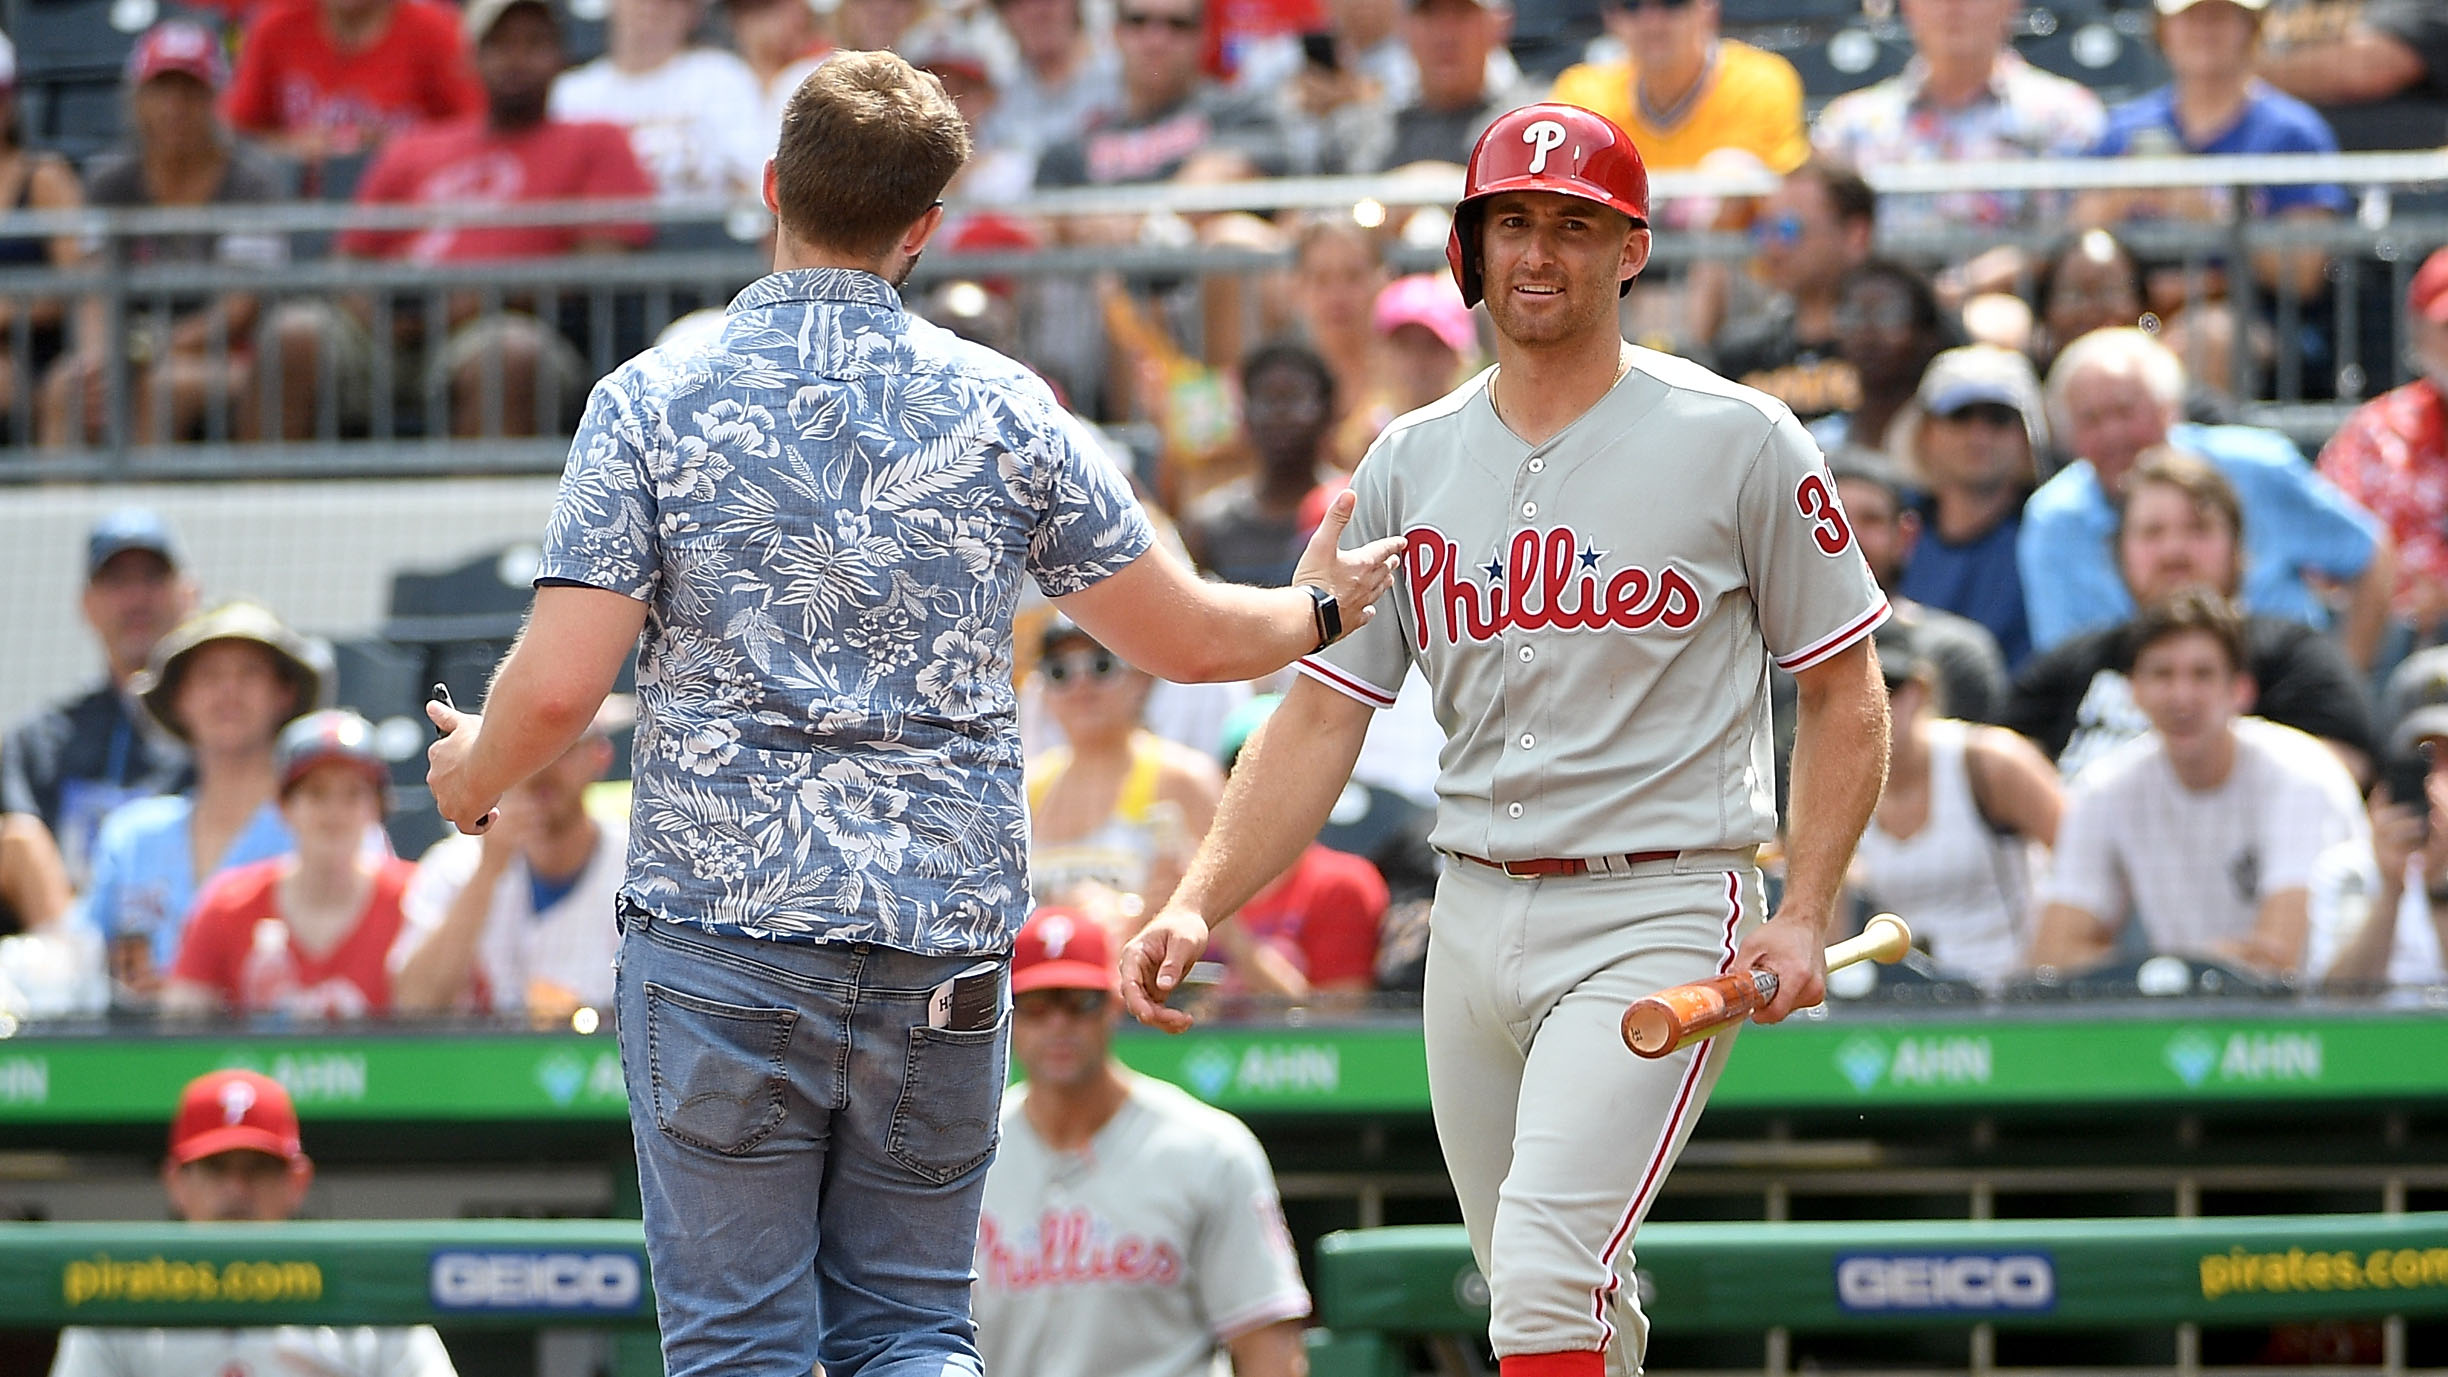 Pirates fan walks on field during game vs Phillies (photos, video)